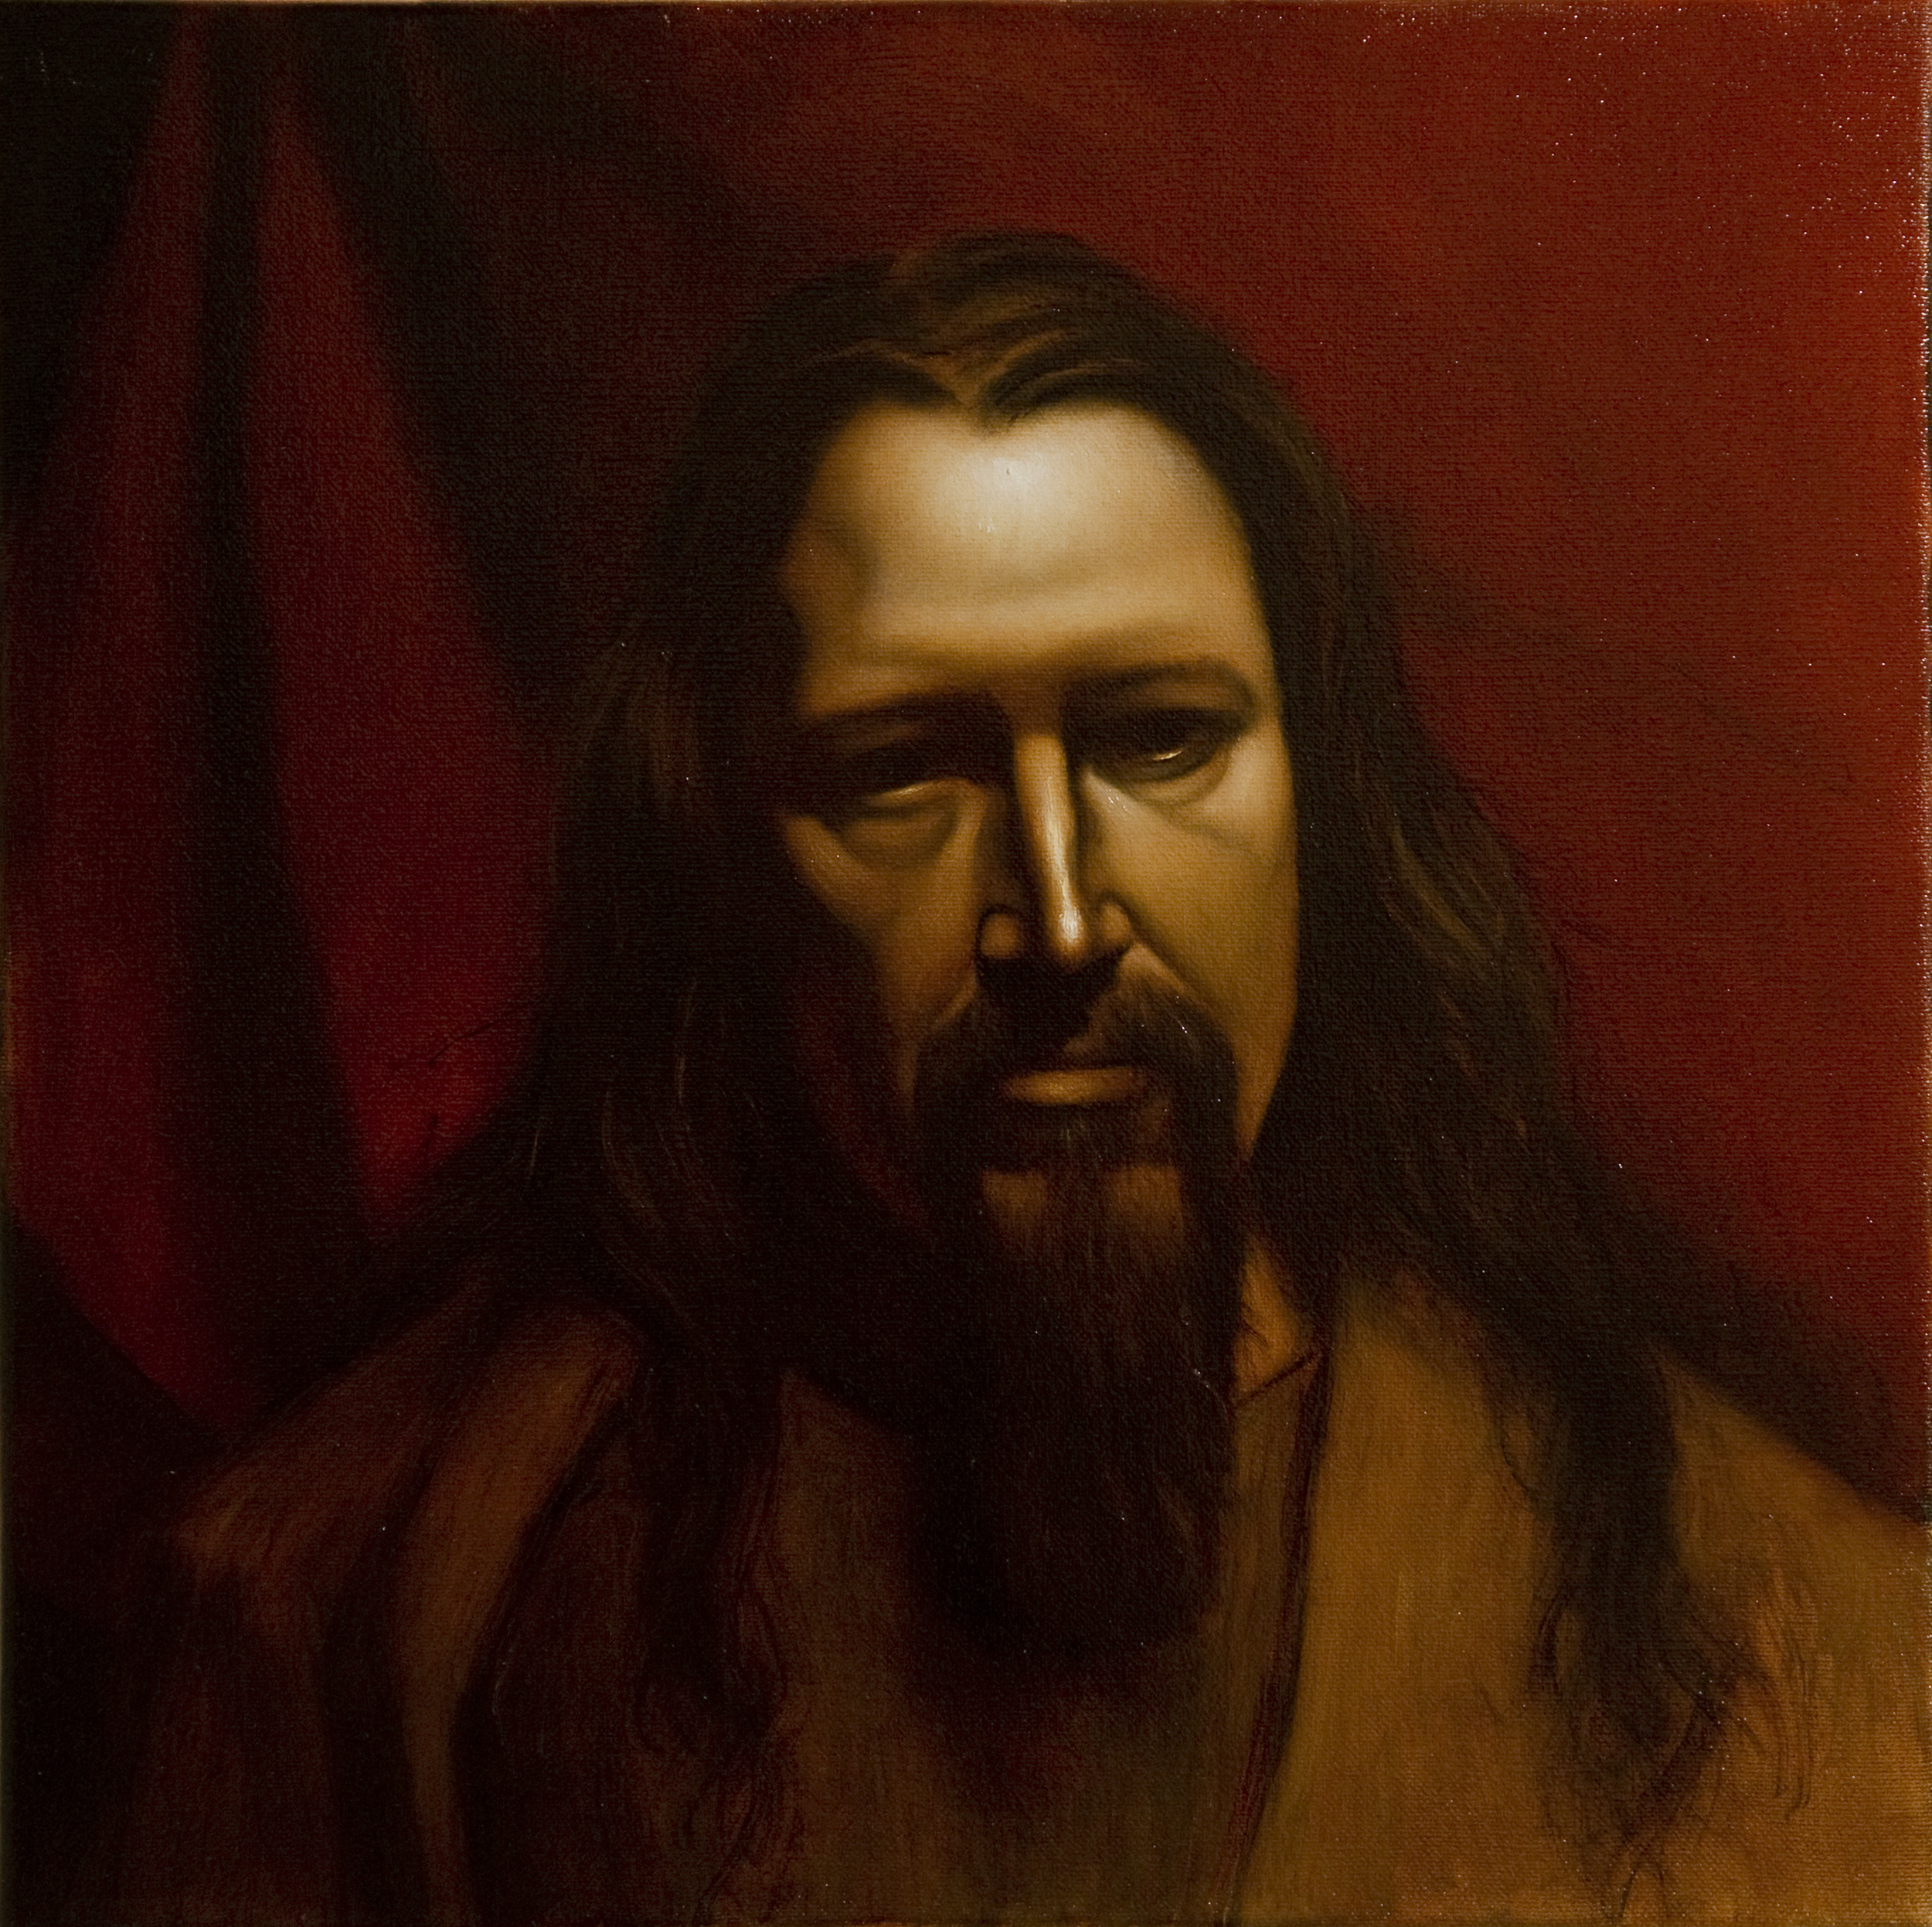 """Portrait of a Man Spanish Style, Oil on Canvas, 14"""" x 14"""", $2,500"""